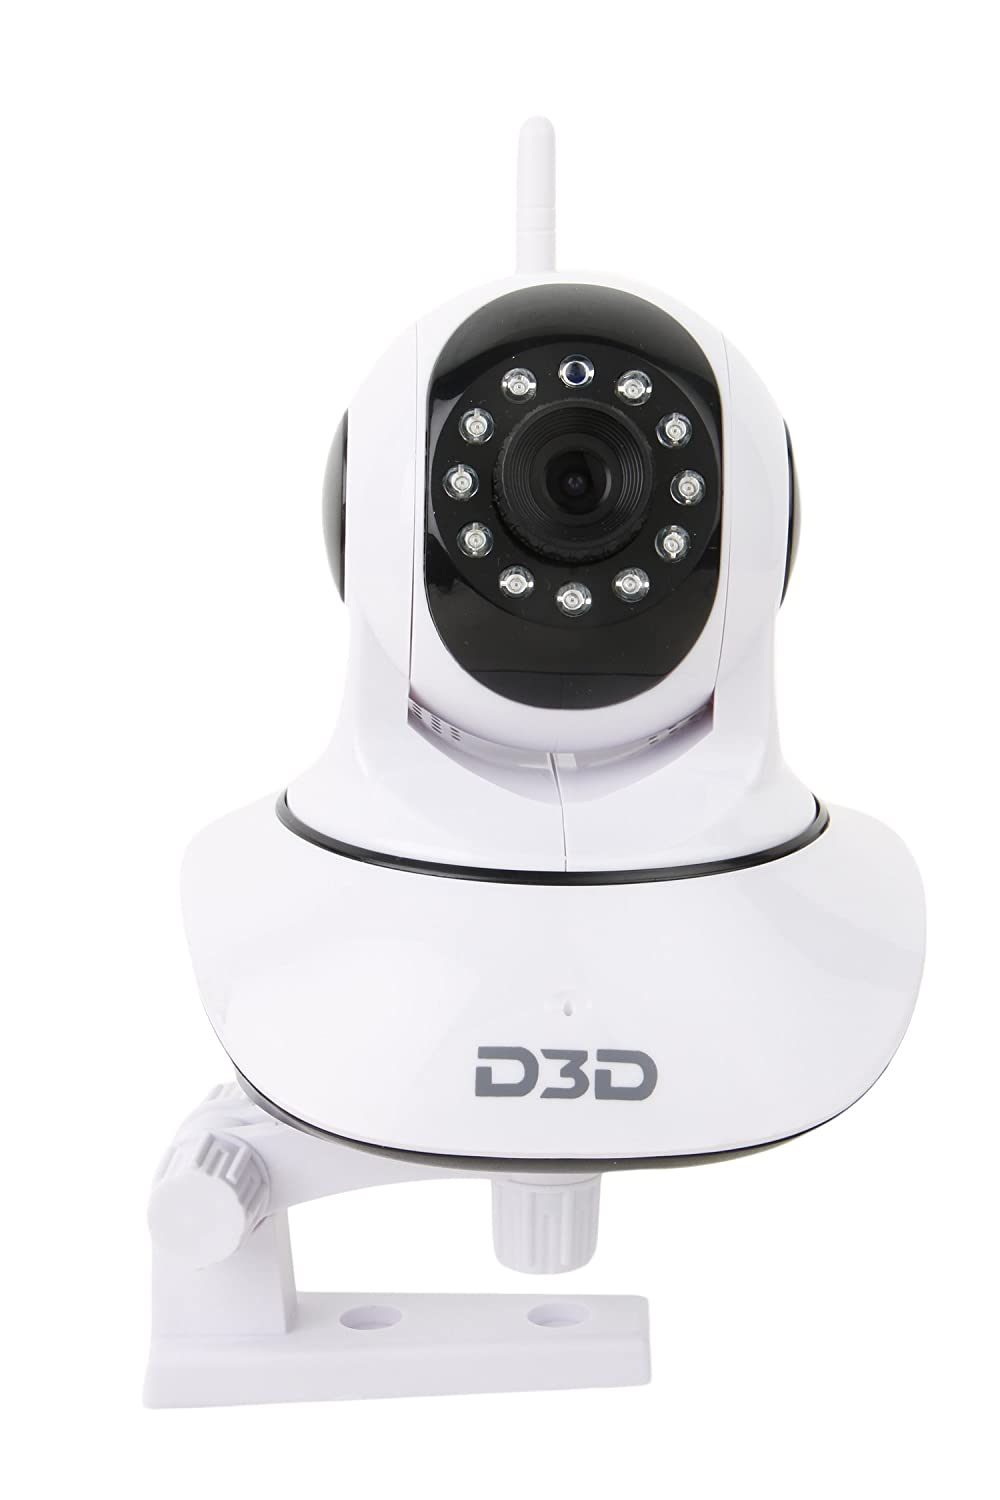 Buy D3d Wireless Hd Ip Wifi Cctv Indoor Security Camera Support Wiring Two Way Light Switch Ceiling Rose Upto 128 Gb Sd Card White Color Modeld8810 Online At Low Price In India